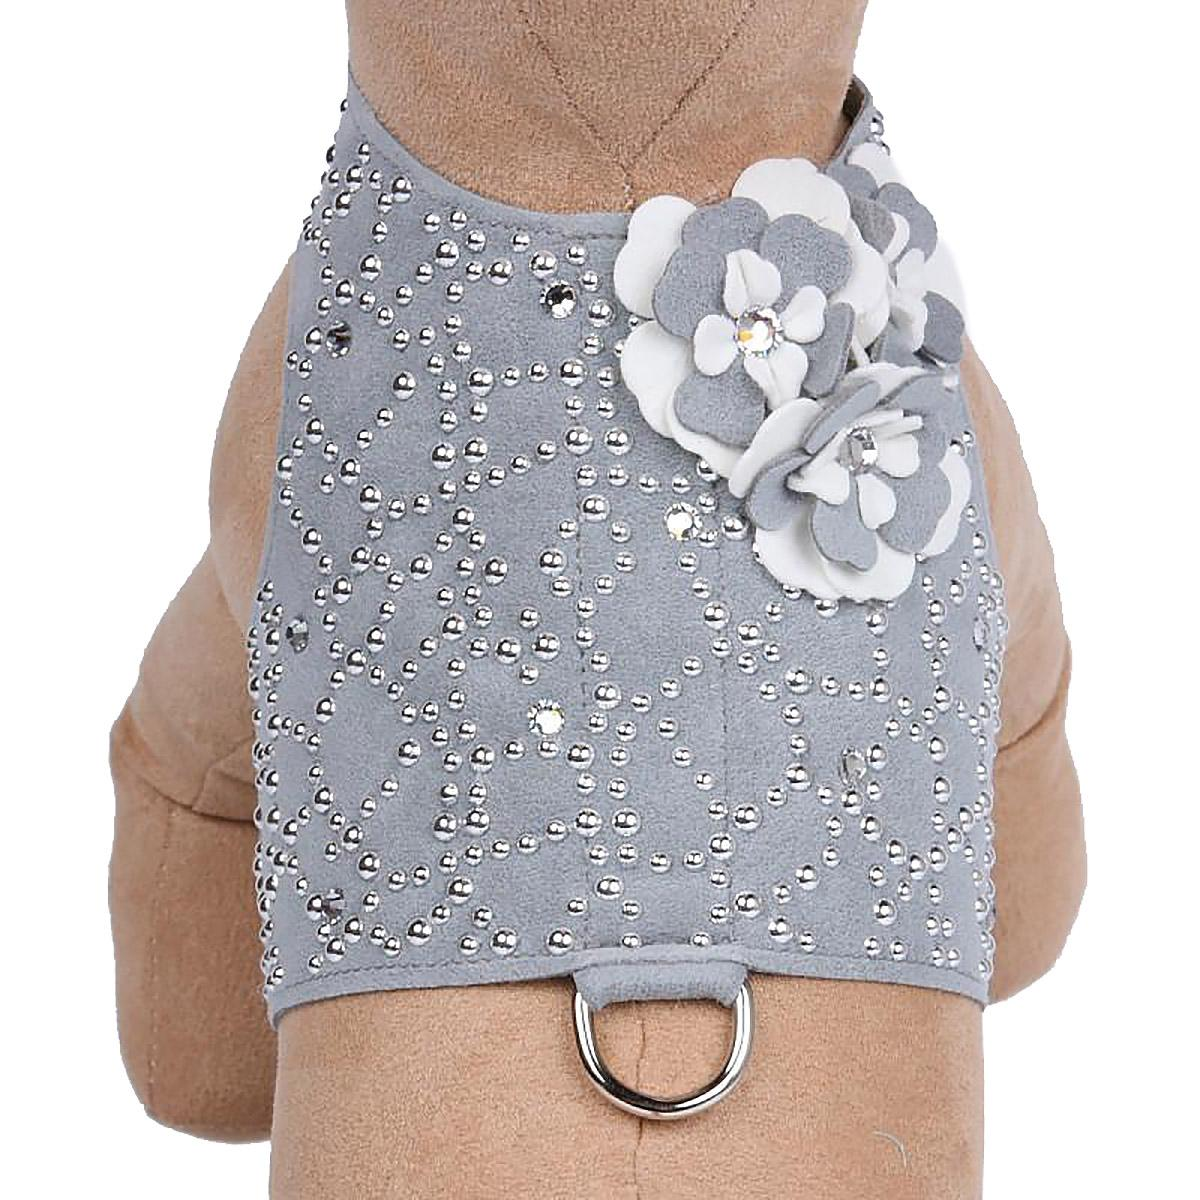 Special Occasion Bailey Dog Harness by Susan Lanci - Platinum Charlotte's Web